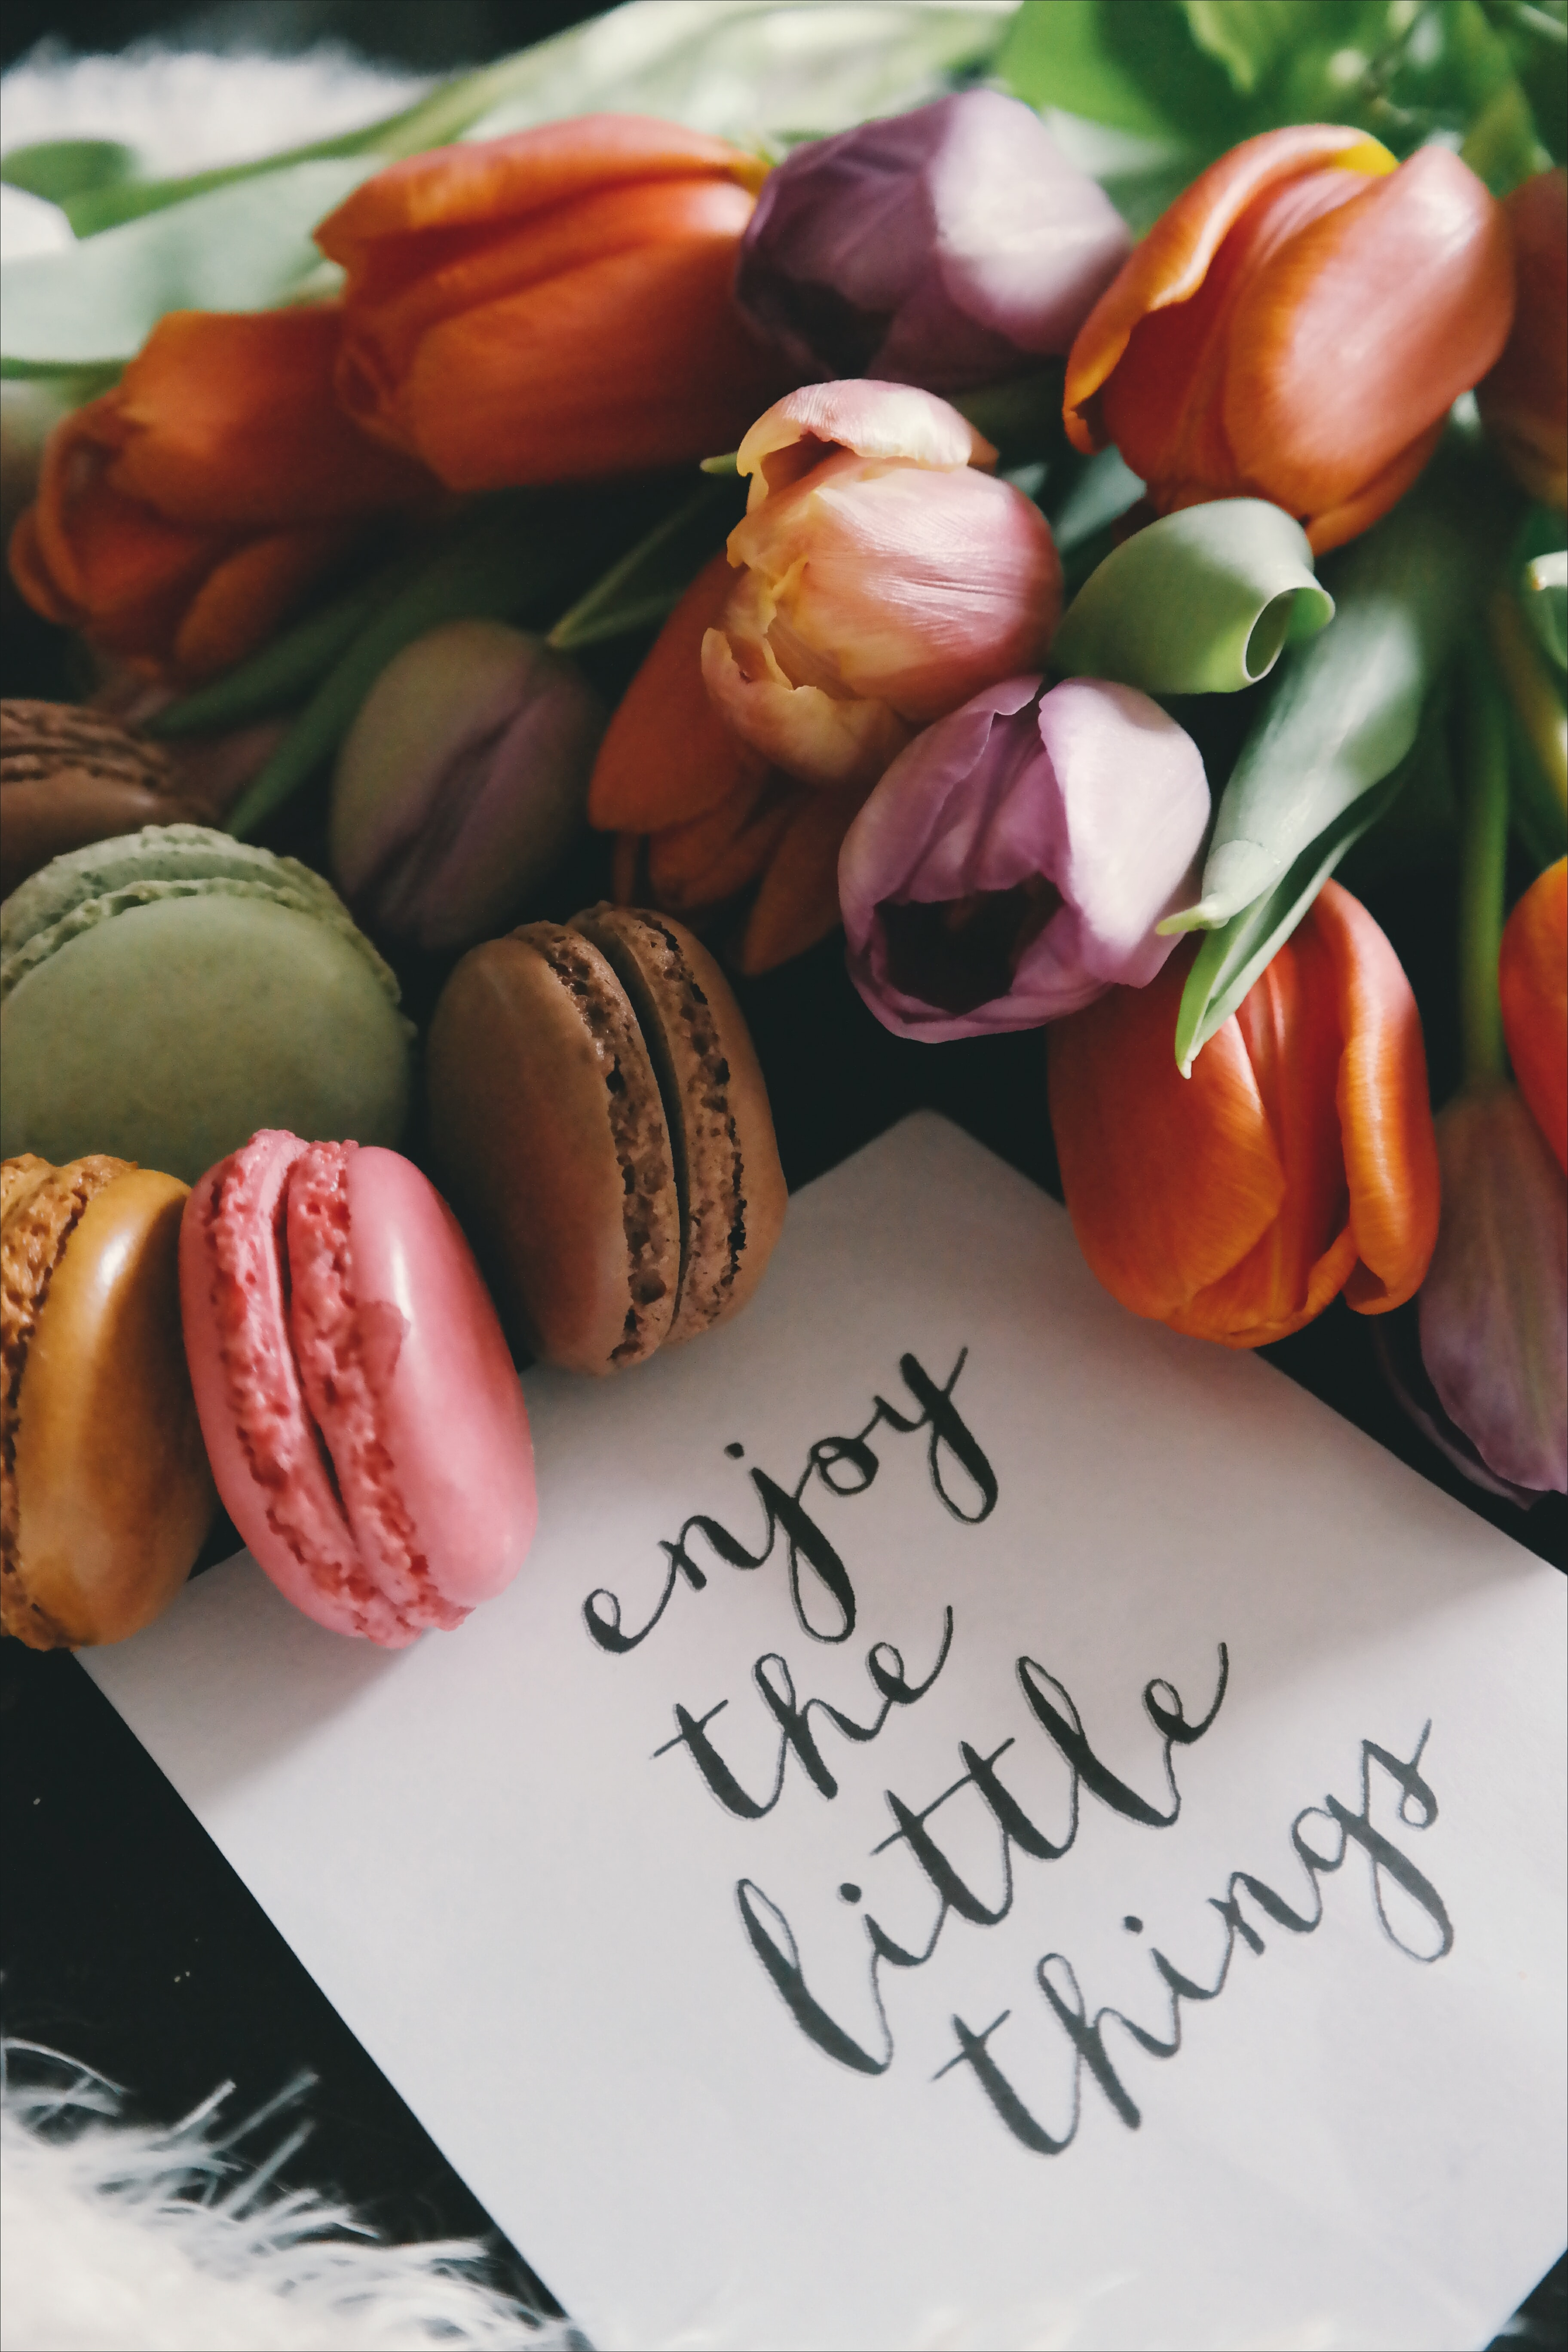 """A piece of paper next to colorful snacks that reads """"Enjoy the little things."""""""